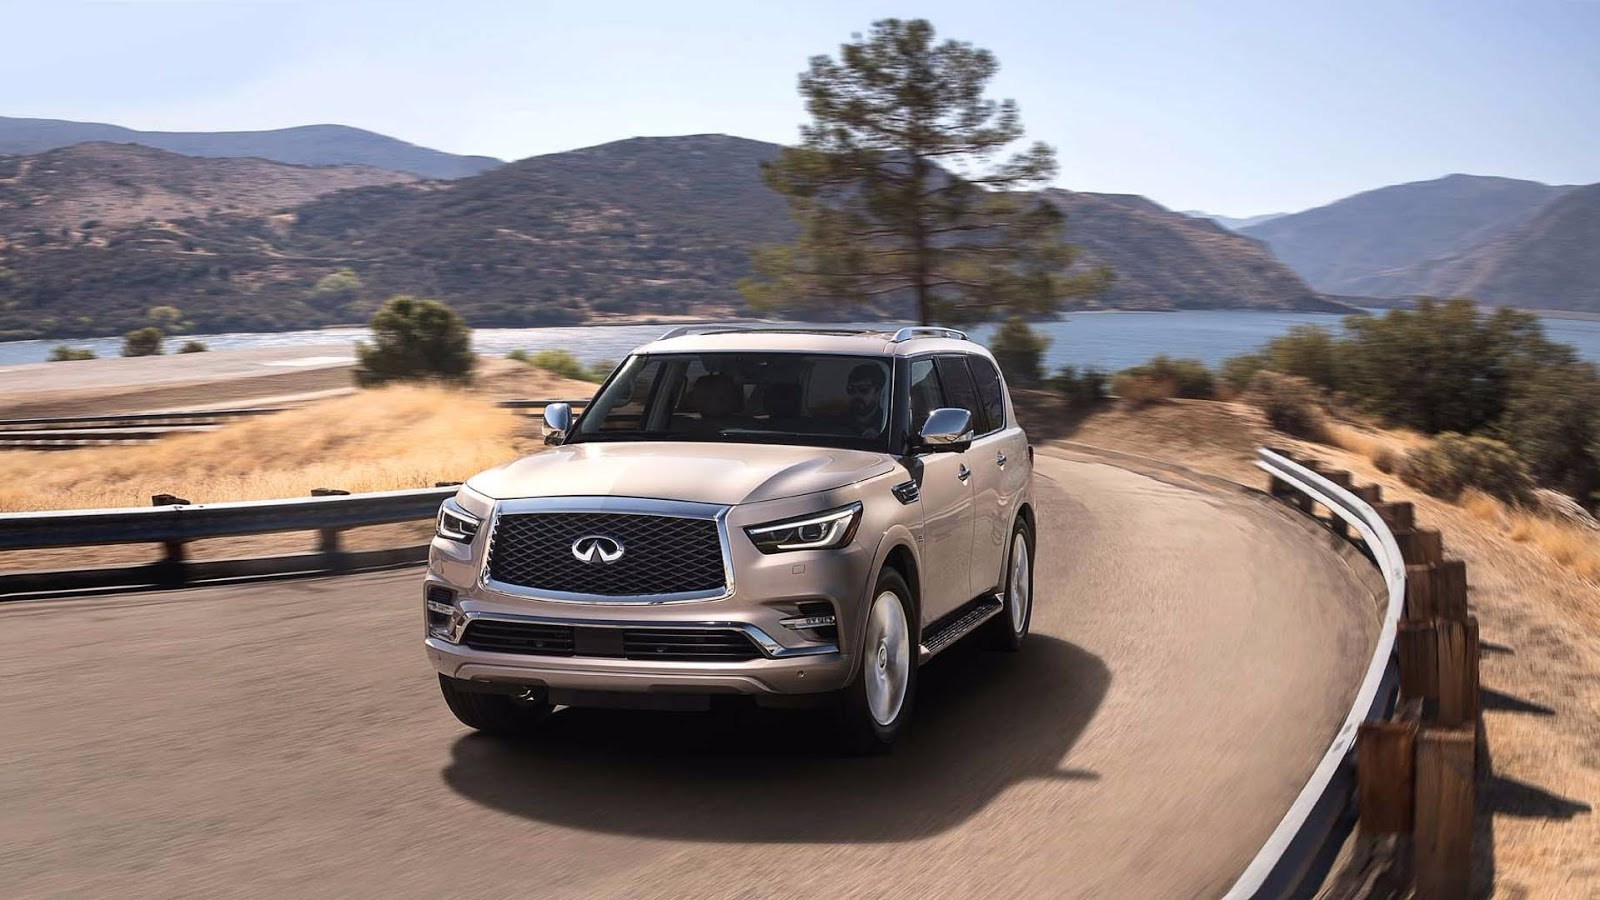 2018 Infiniti QX80 Facelift Retails At $64,750 - autoevolution